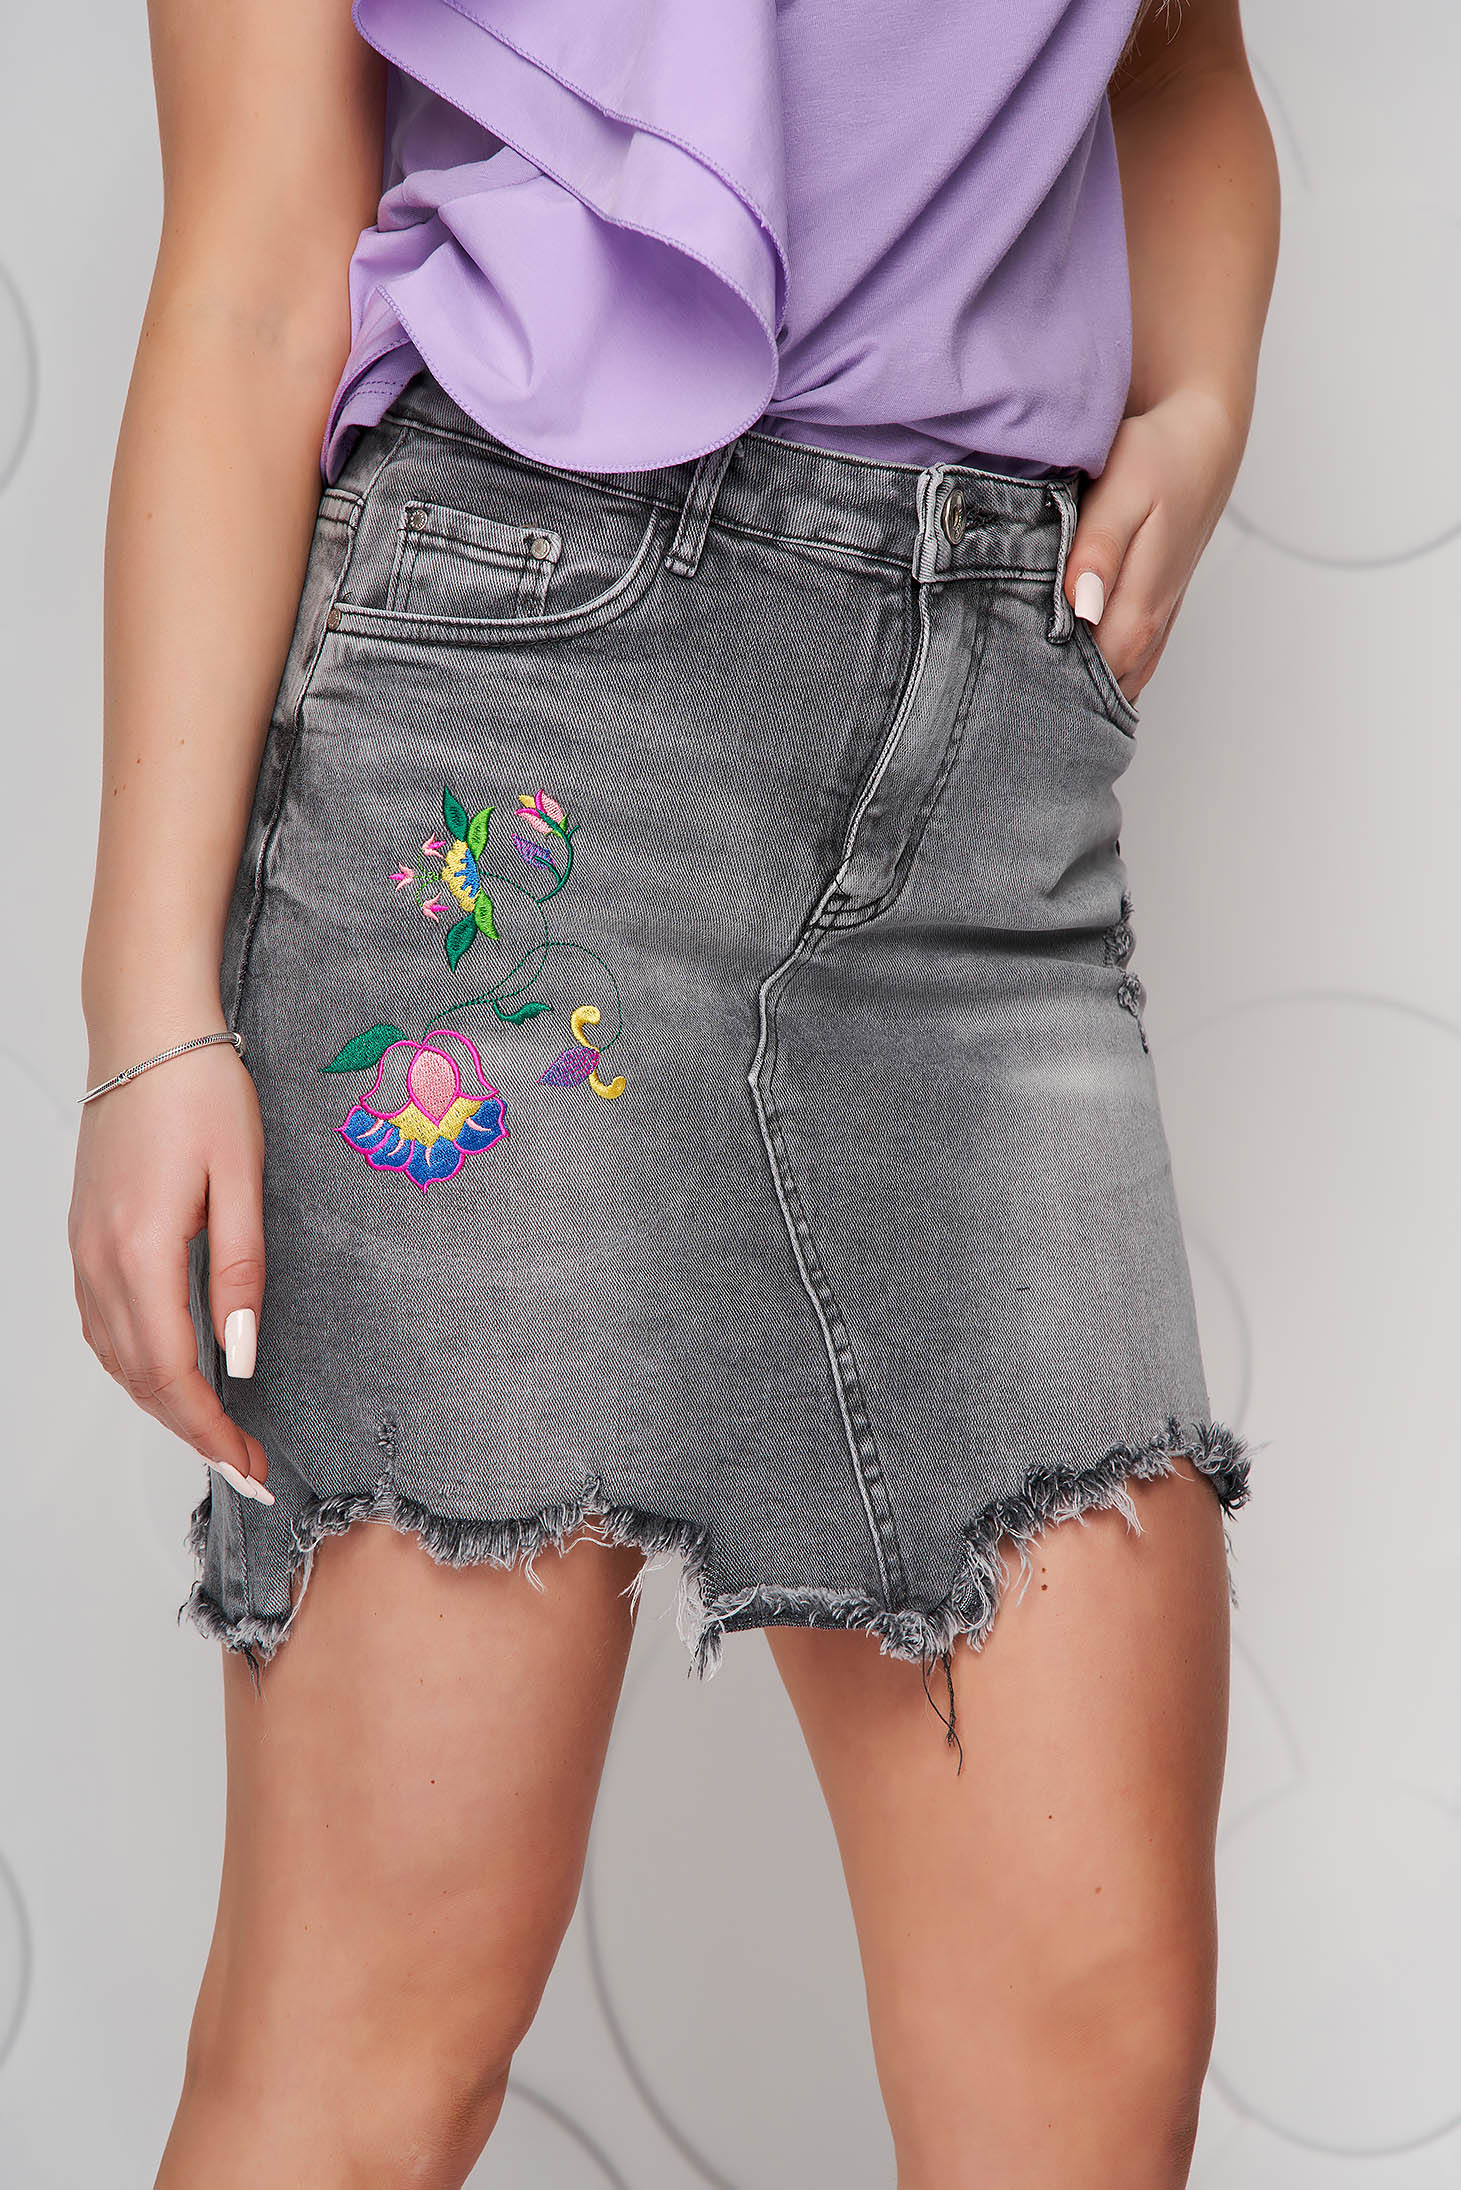 Grey skirt denim pencil with fringes at the bottom